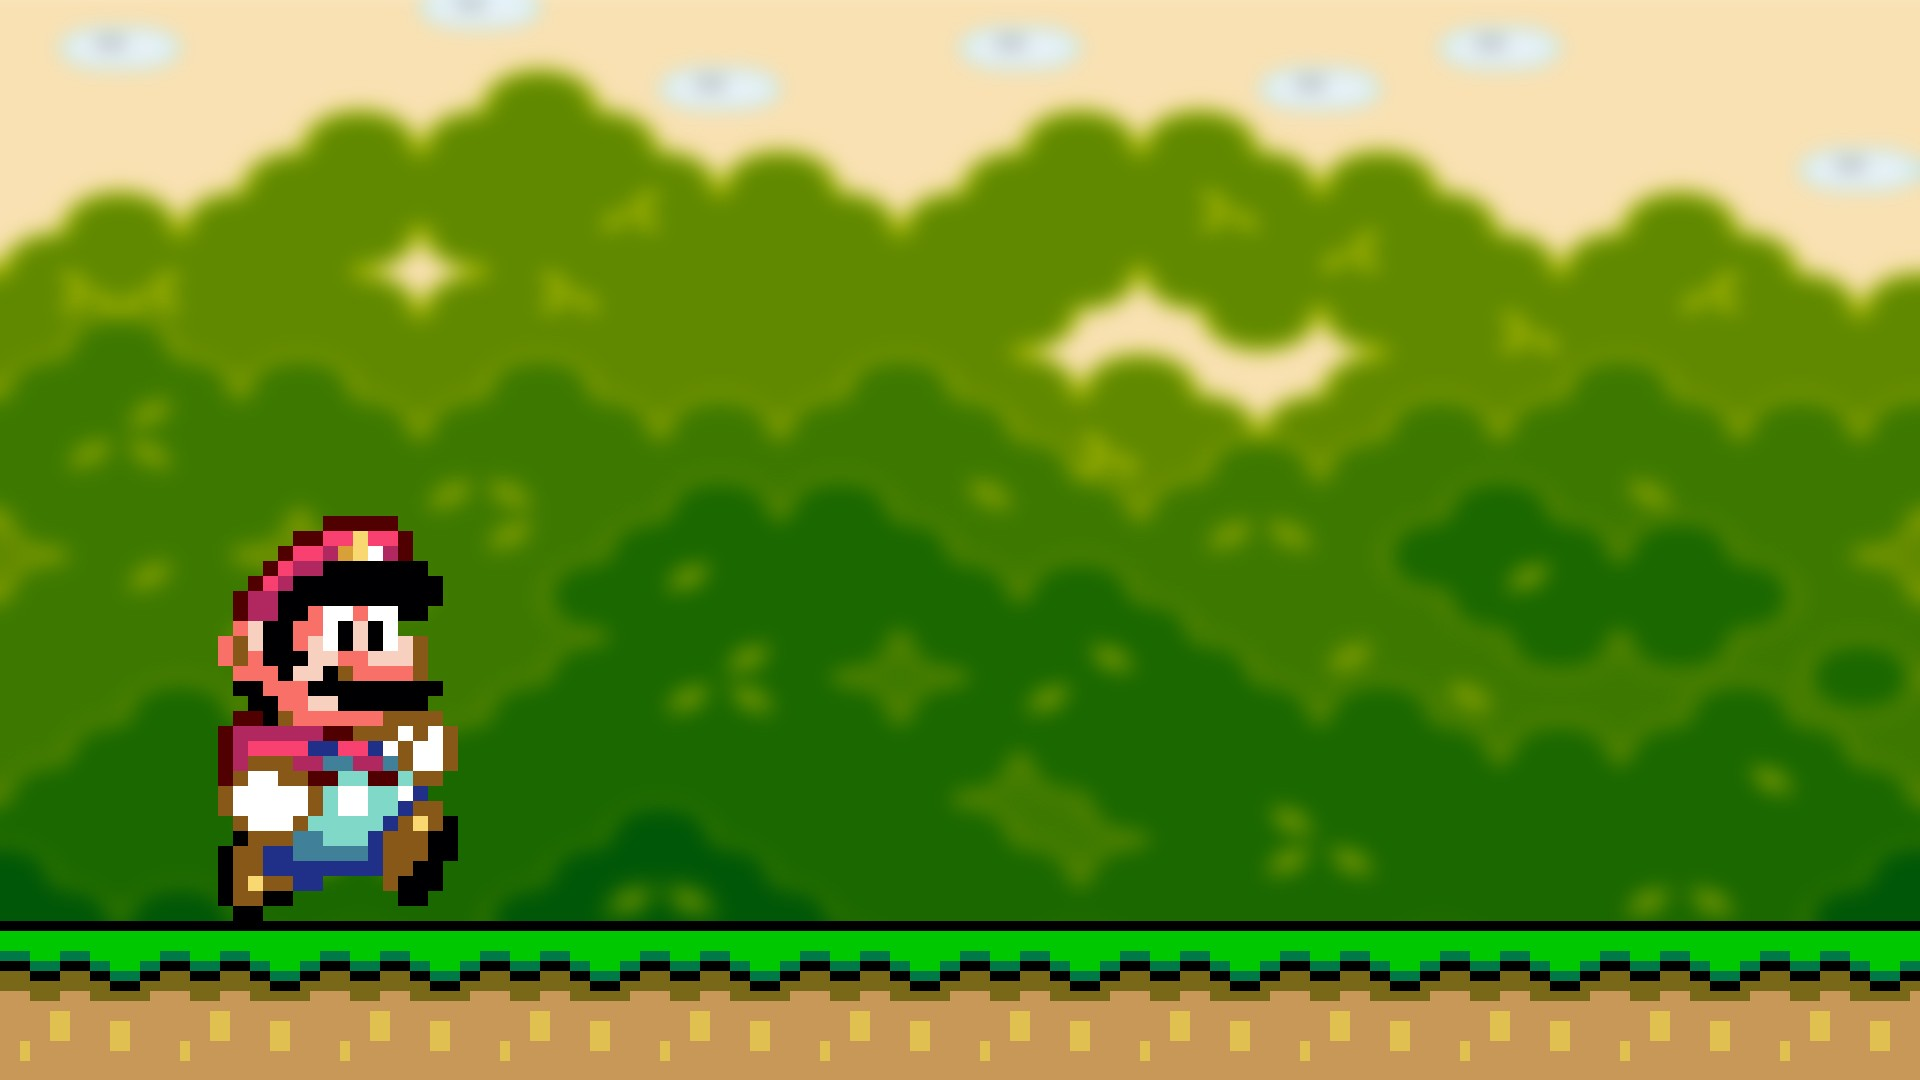 Nintendo Video Wallpaper 1920x1080 Nintendo Video Games Mario 1920x1080